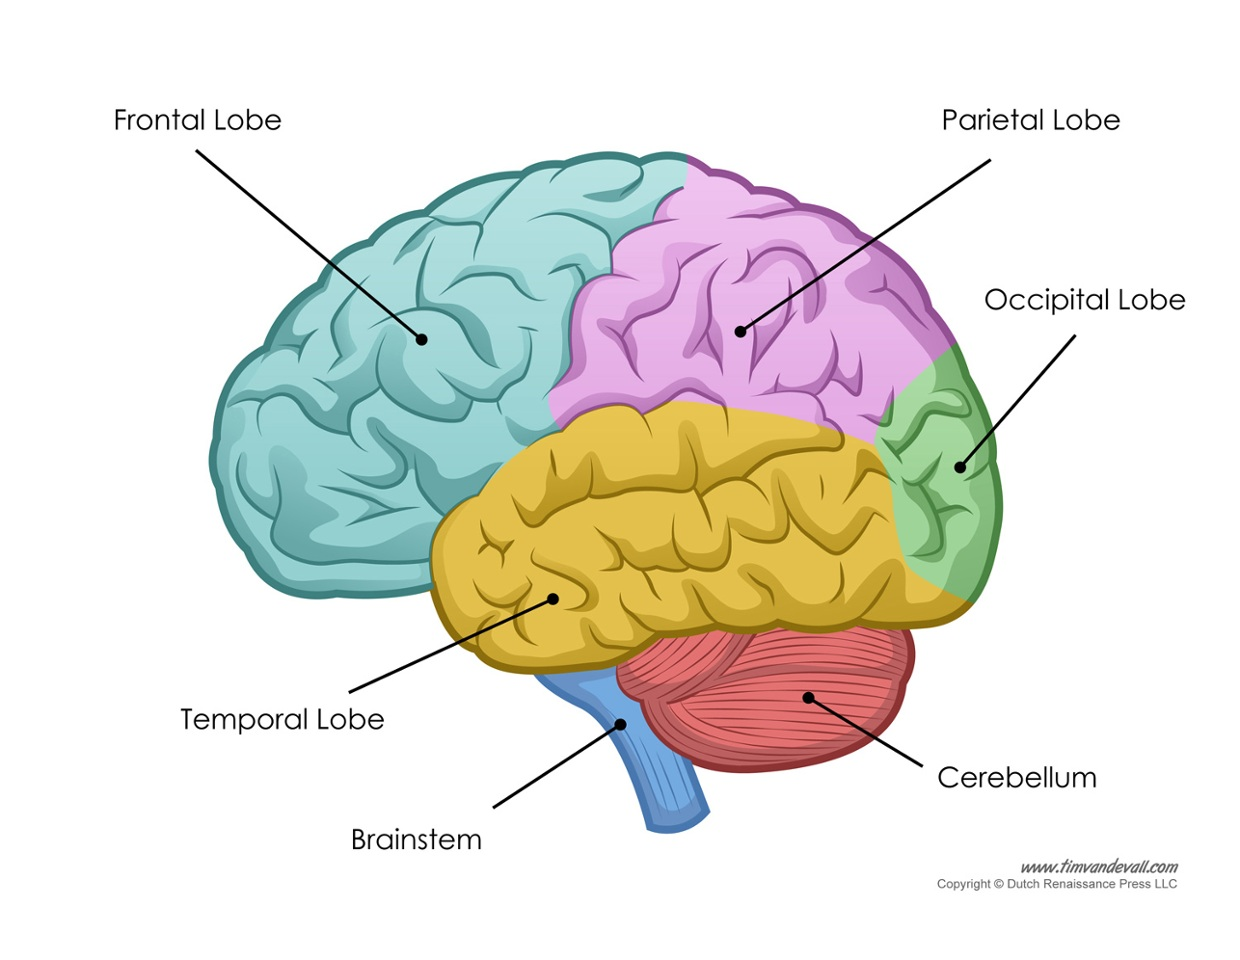 The frontal lobe is the last part of the brain to develop...